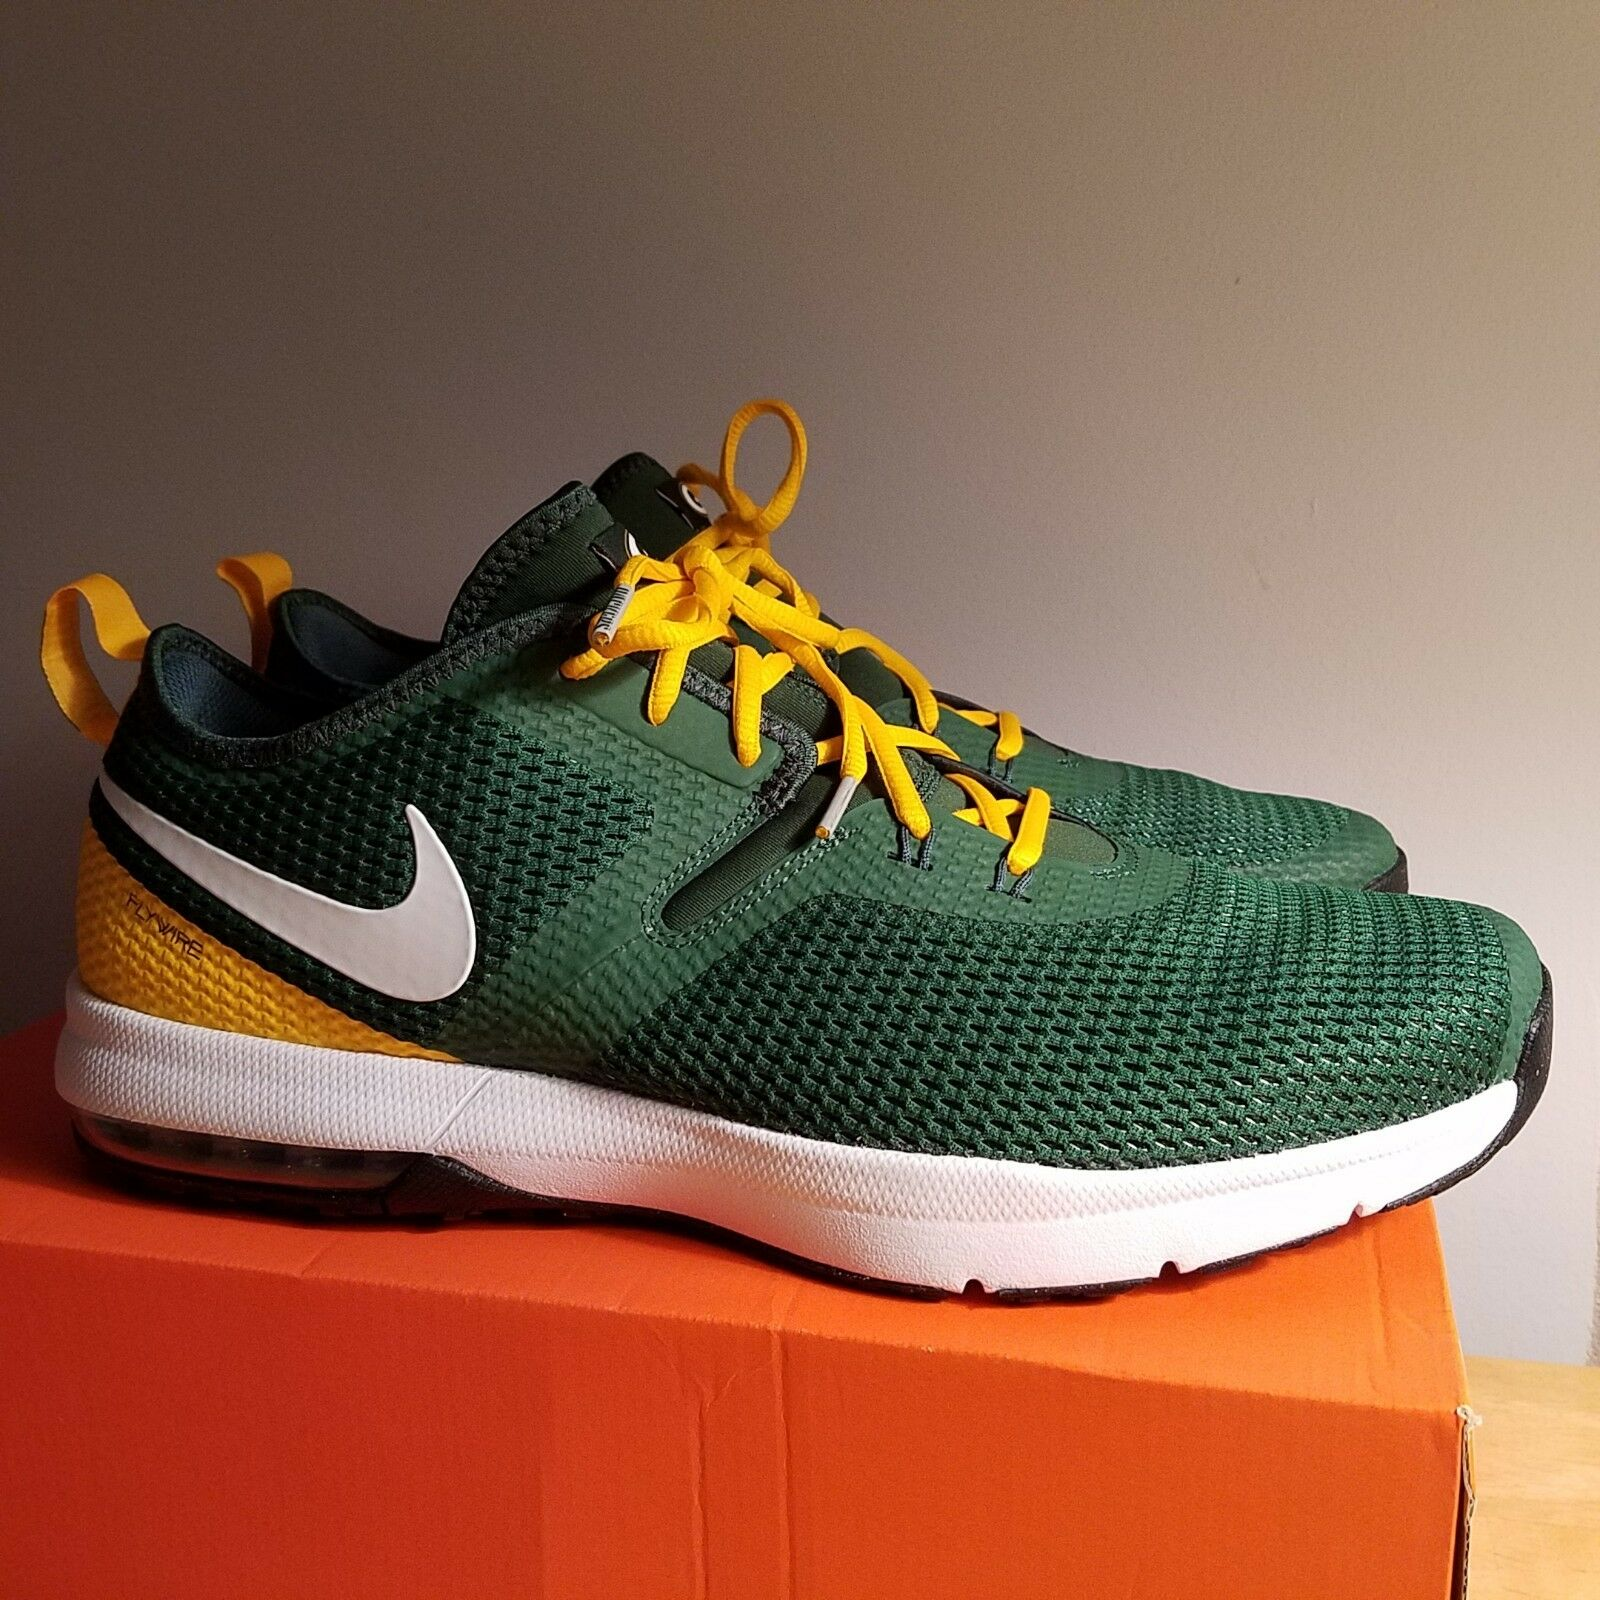 Nike Air Max Typha 2 Green Bay Packers Men's shoes. AR0509-300 Size 7